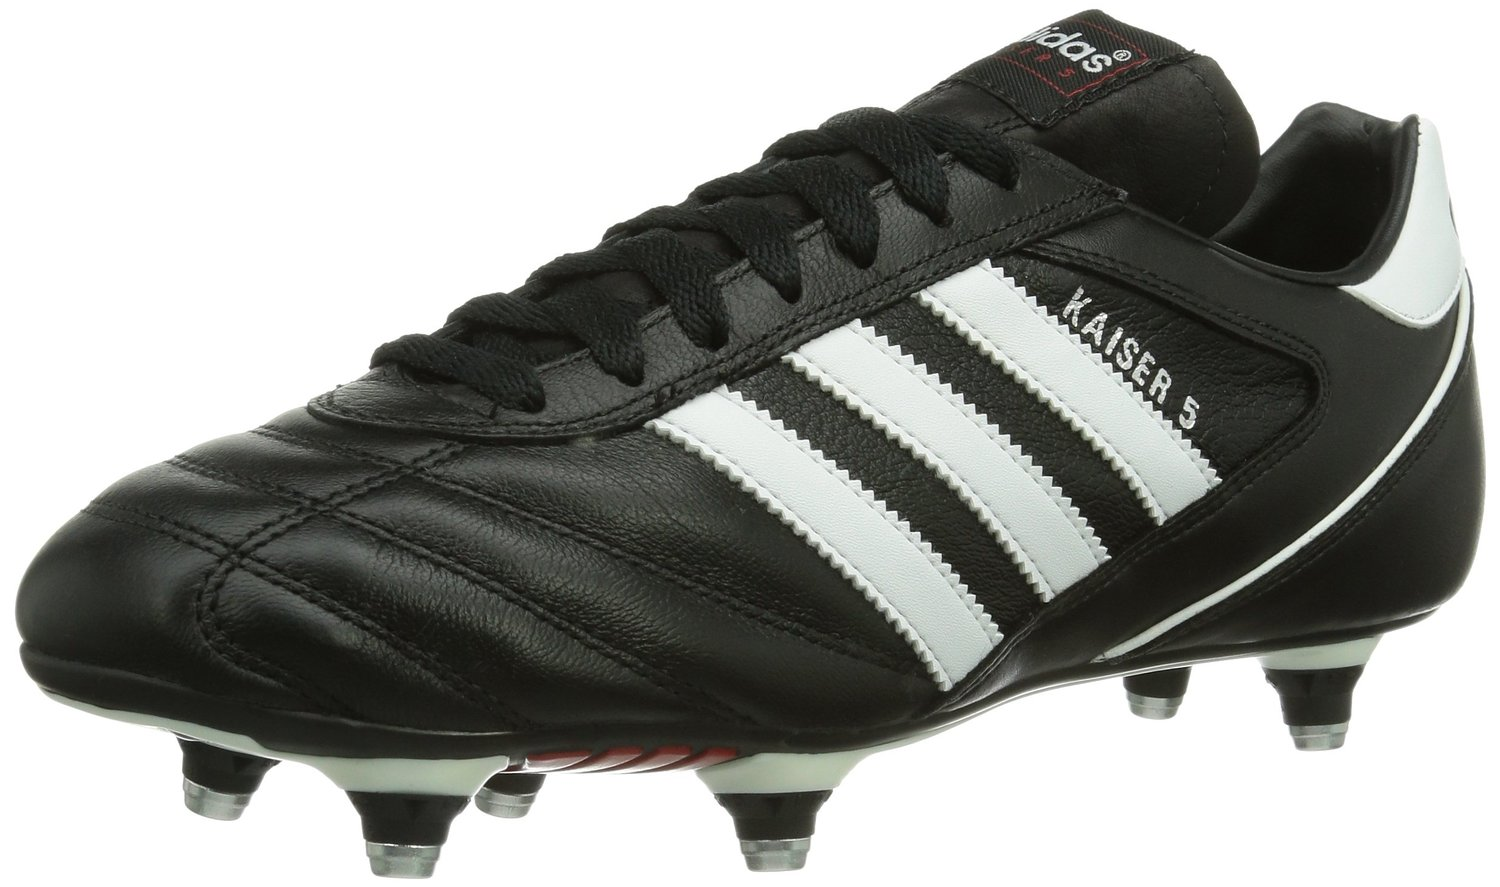 outlet store 74574 684c7 Get Quotations · adidas Kaiser 5 Cup SG Football Boots - Adult -  BlackWhite - UK Shoe